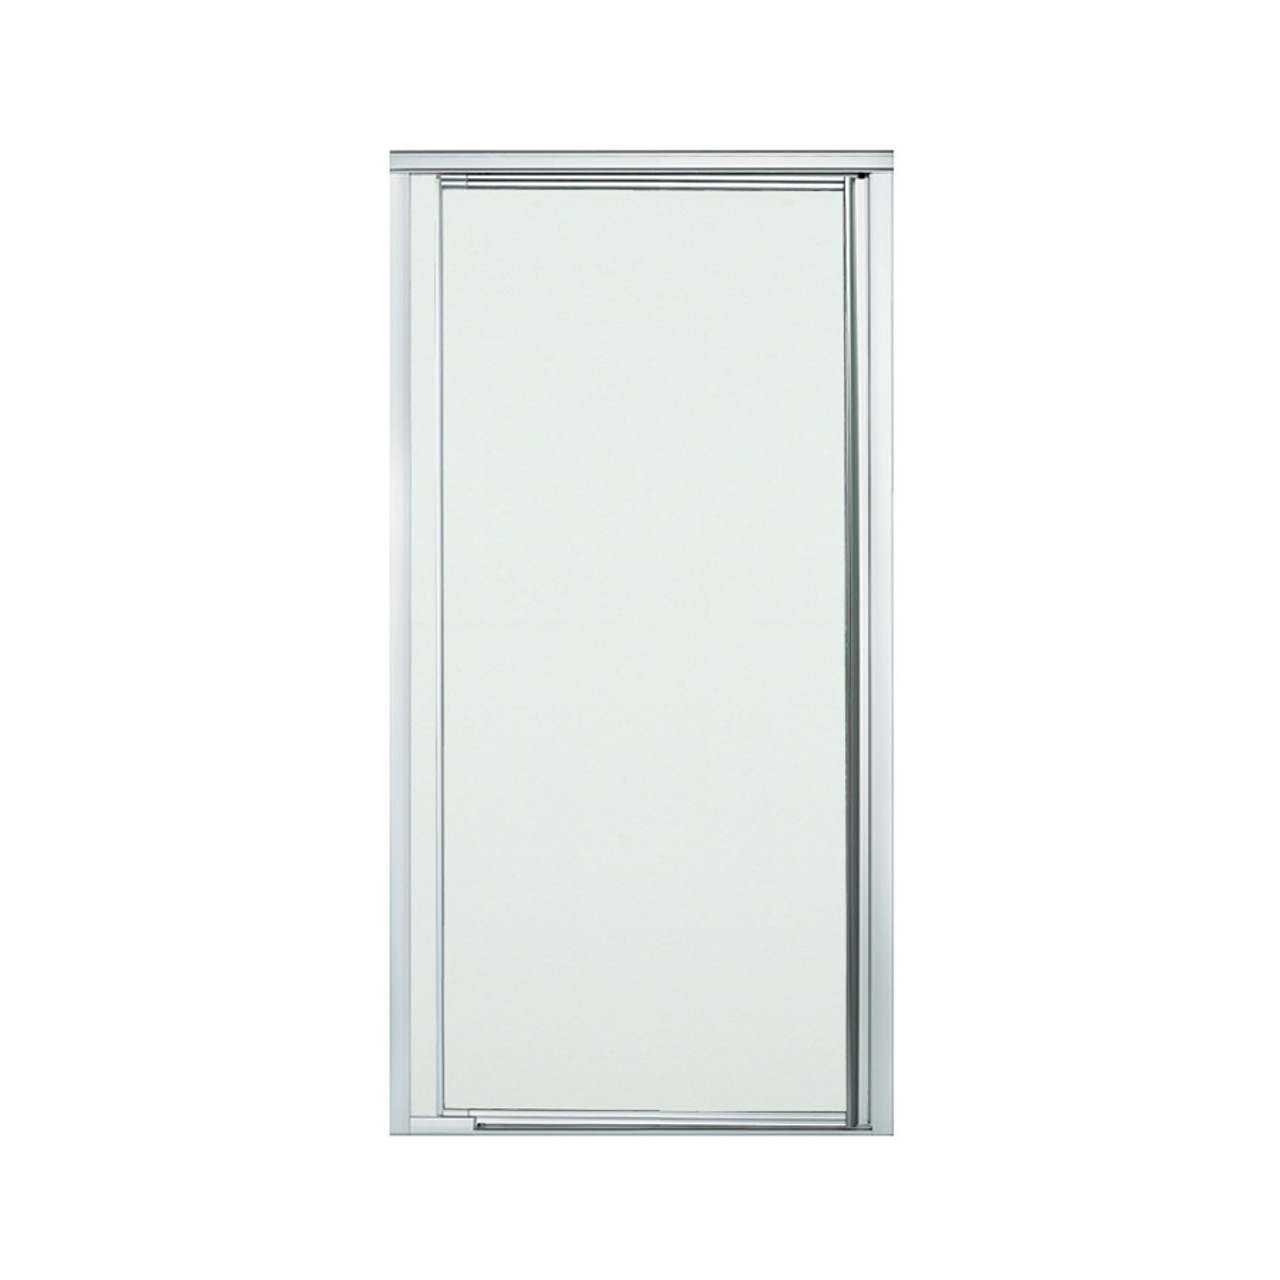 Sterling 1505d 36s G03 Vista Pivot Ii 31 1 4 In X 36 In Framed Alcove Shower Door With Frosted Glass